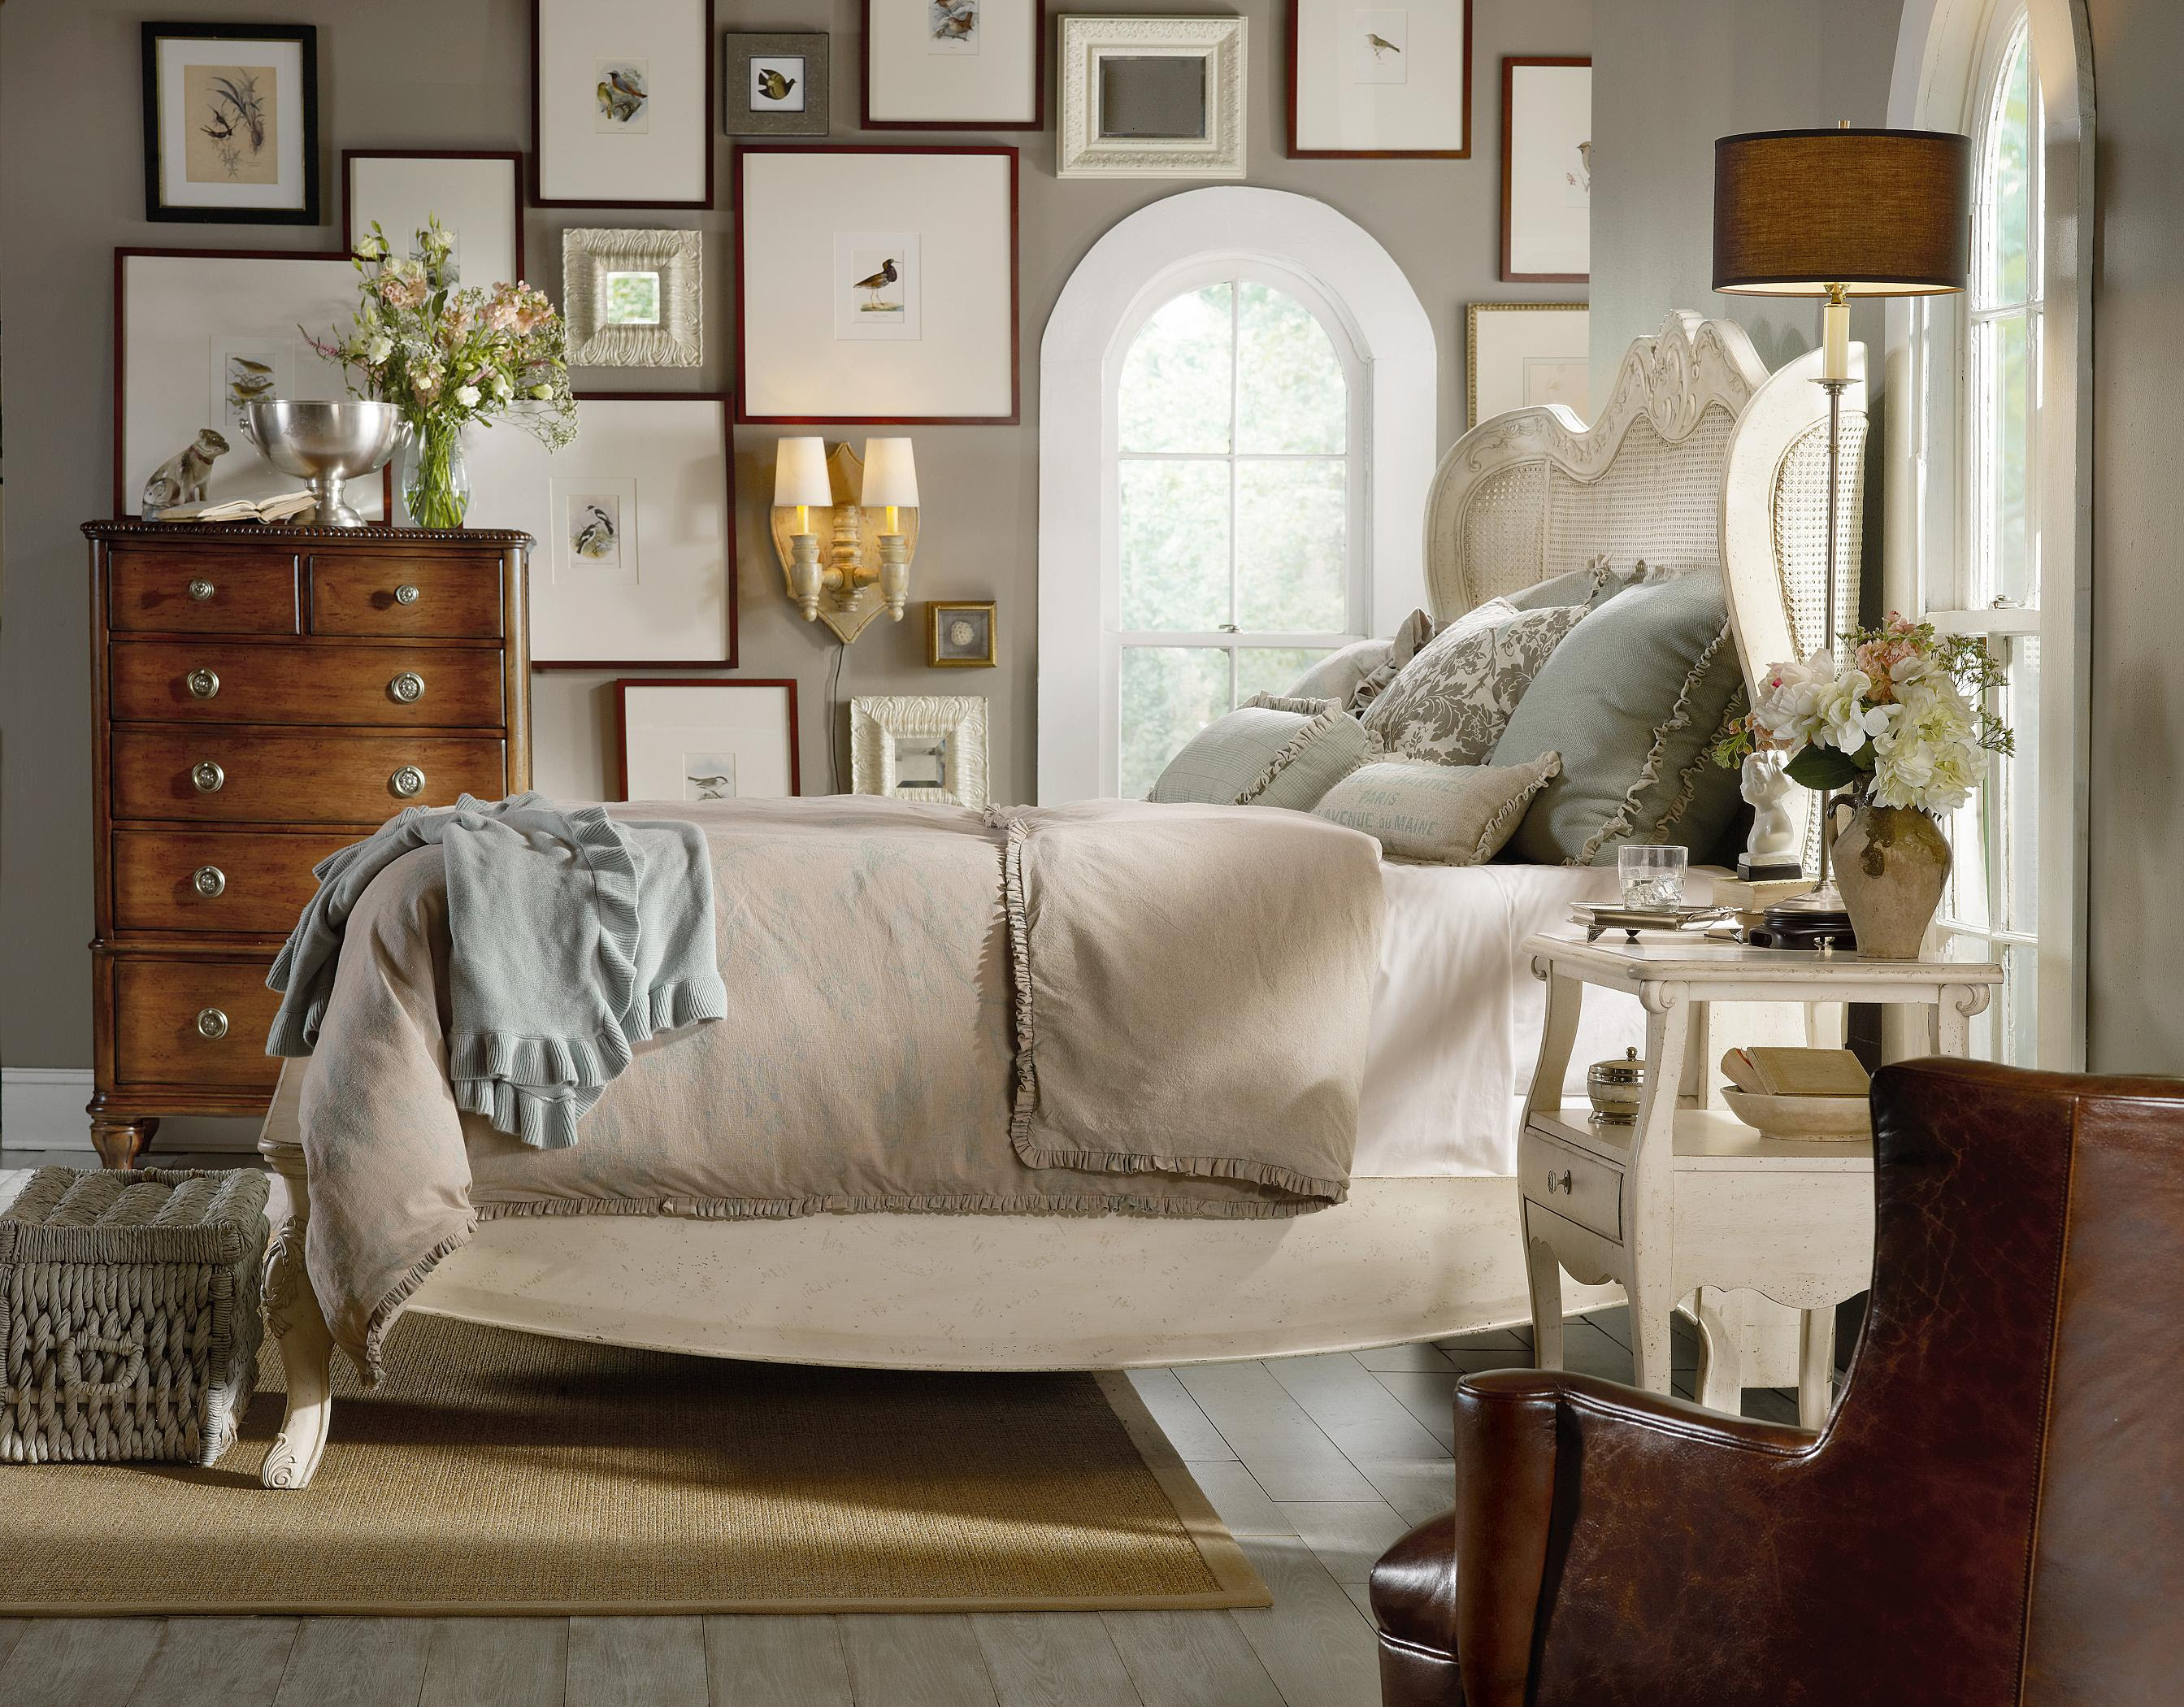 Creating The English Country House Look Part 2 Hooker Furniture Corporation